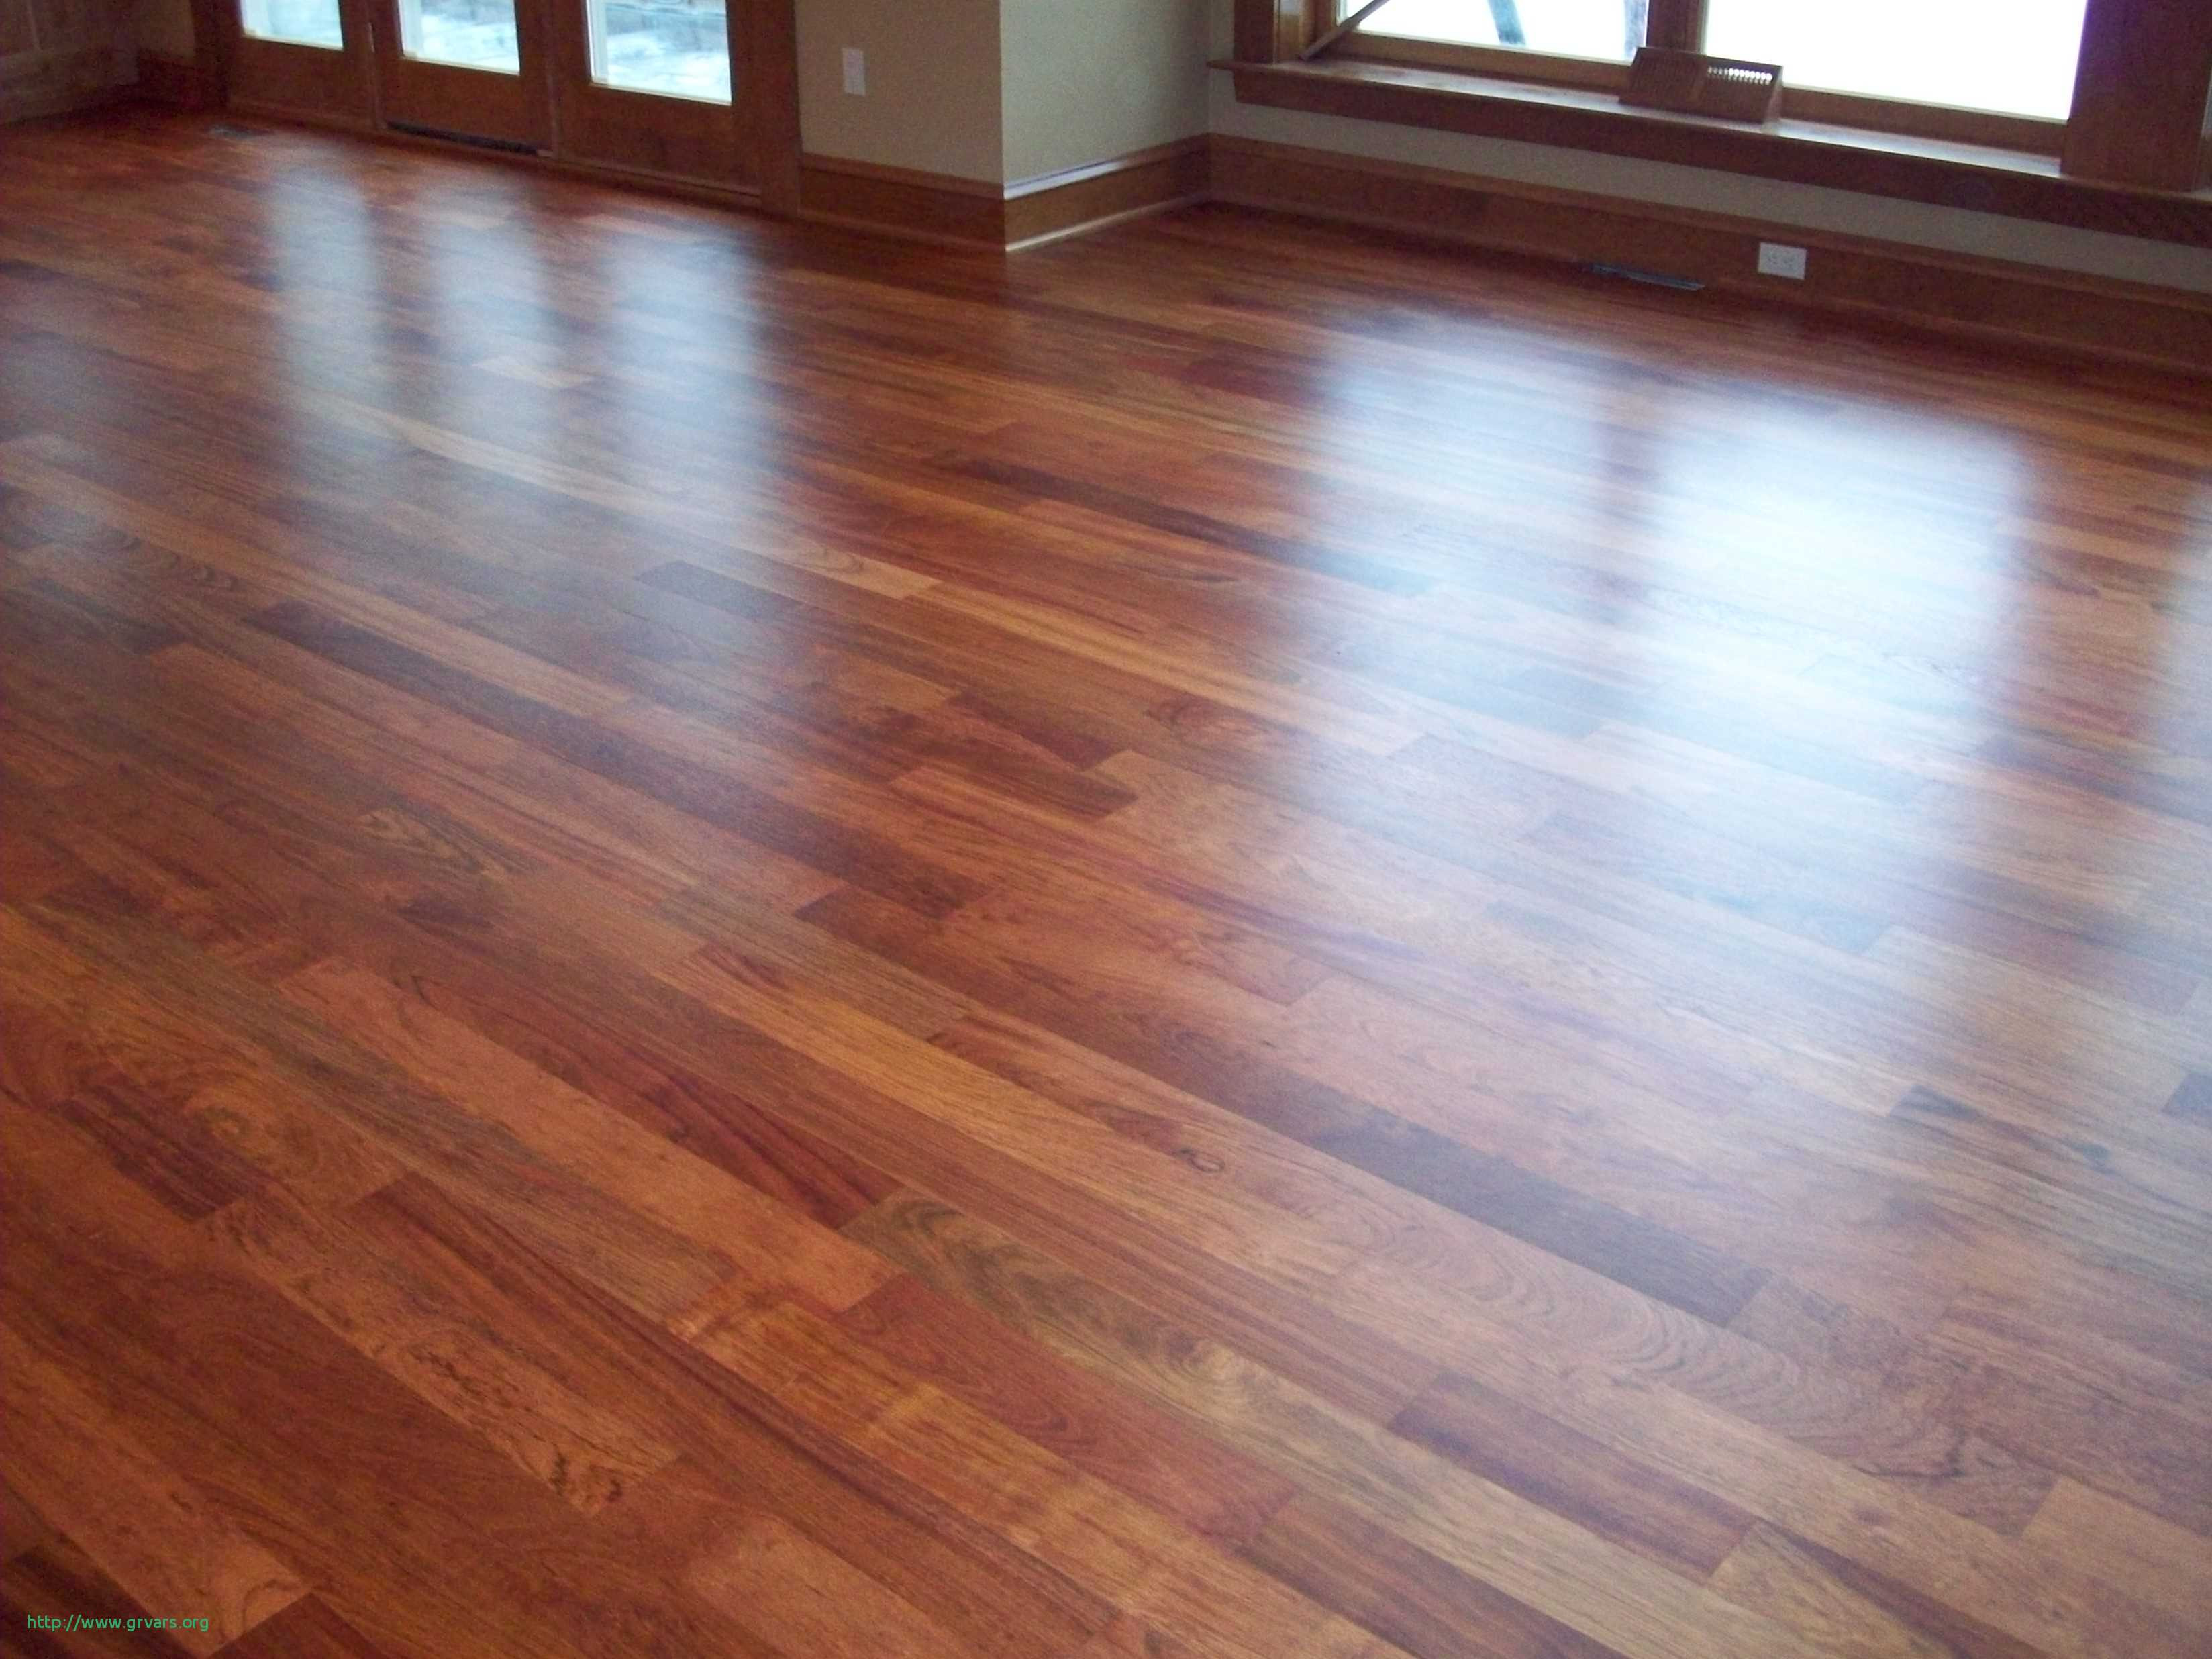 hardwood flooring liquidators toronto of 21 beau cheapest hardwood flooring in toronto ideas blog throughout cheapest hardwood flooring in toronto impressionnant fabulous discount hardwood flooring 0 floor brampton 25 toronto